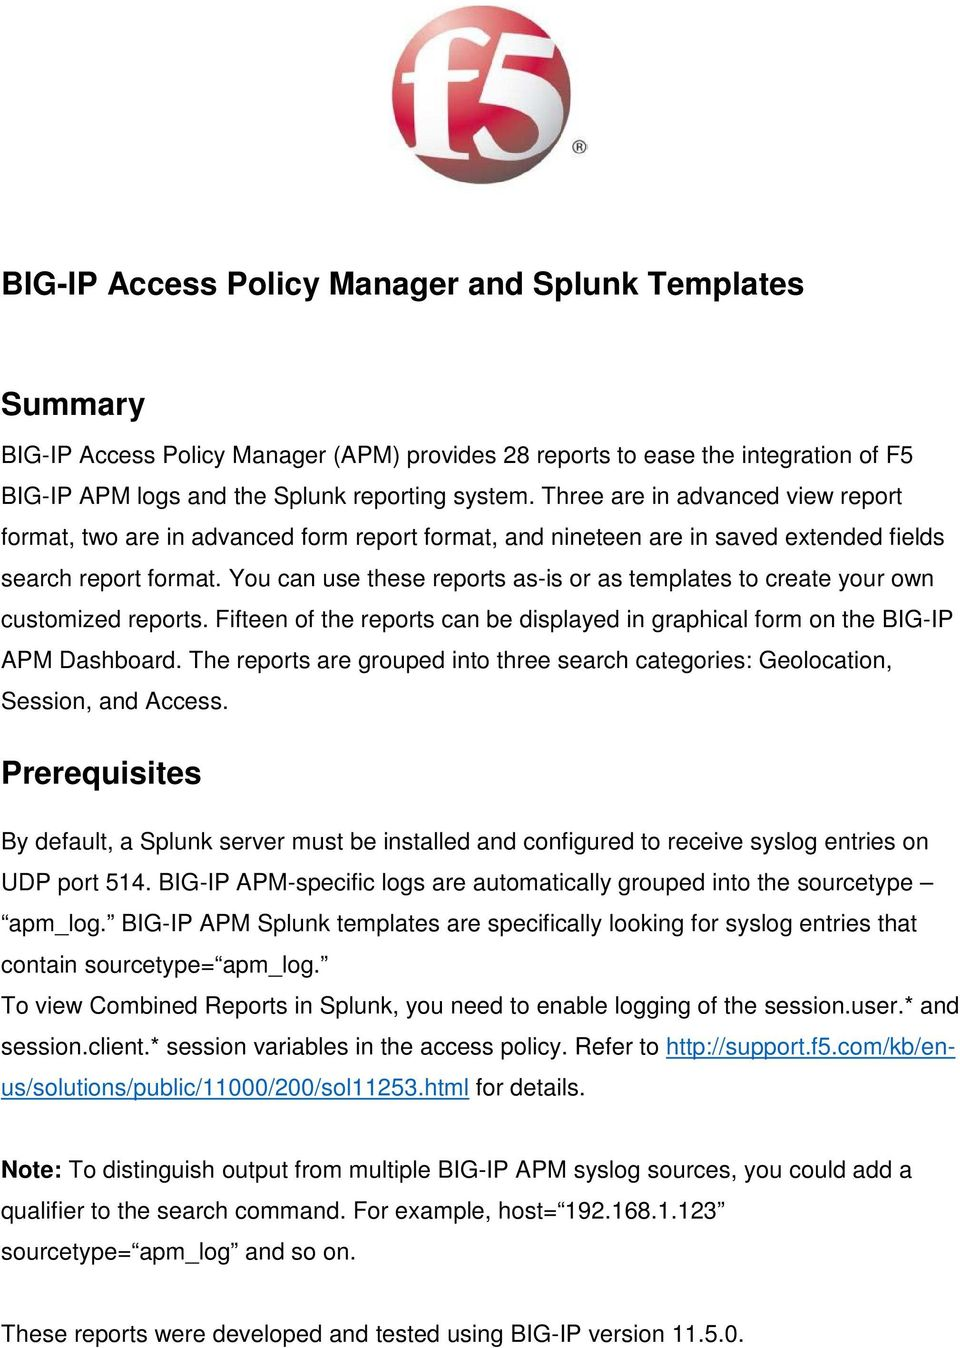 BIG-IP Access Policy Manager and Splunk Templates - PDF